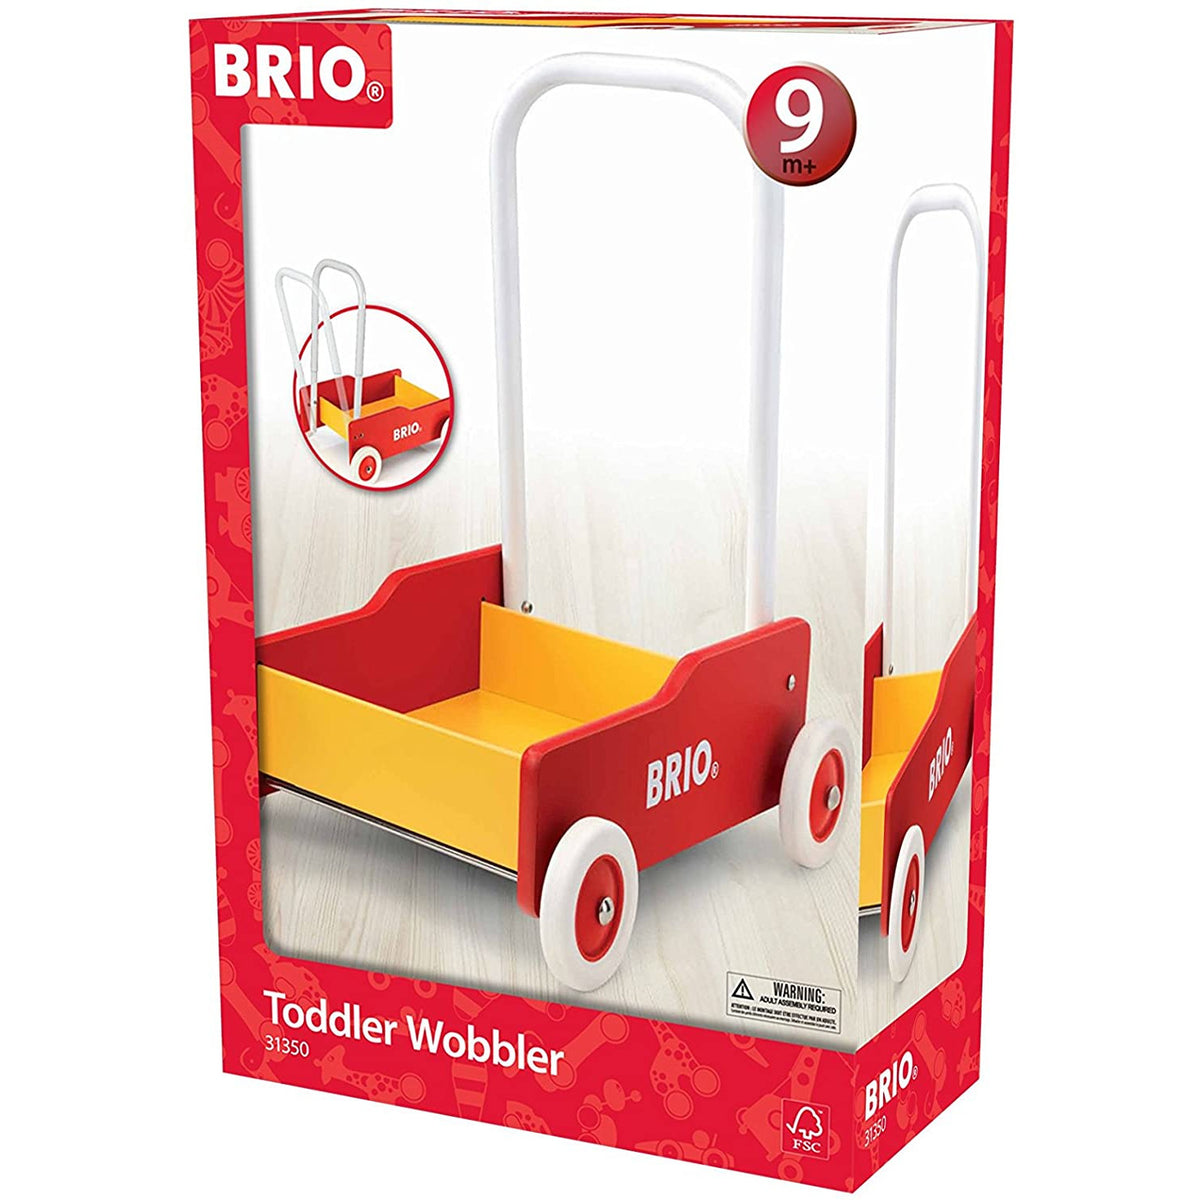 Brio Toddler Wobbler canada ontario 31350 wooden